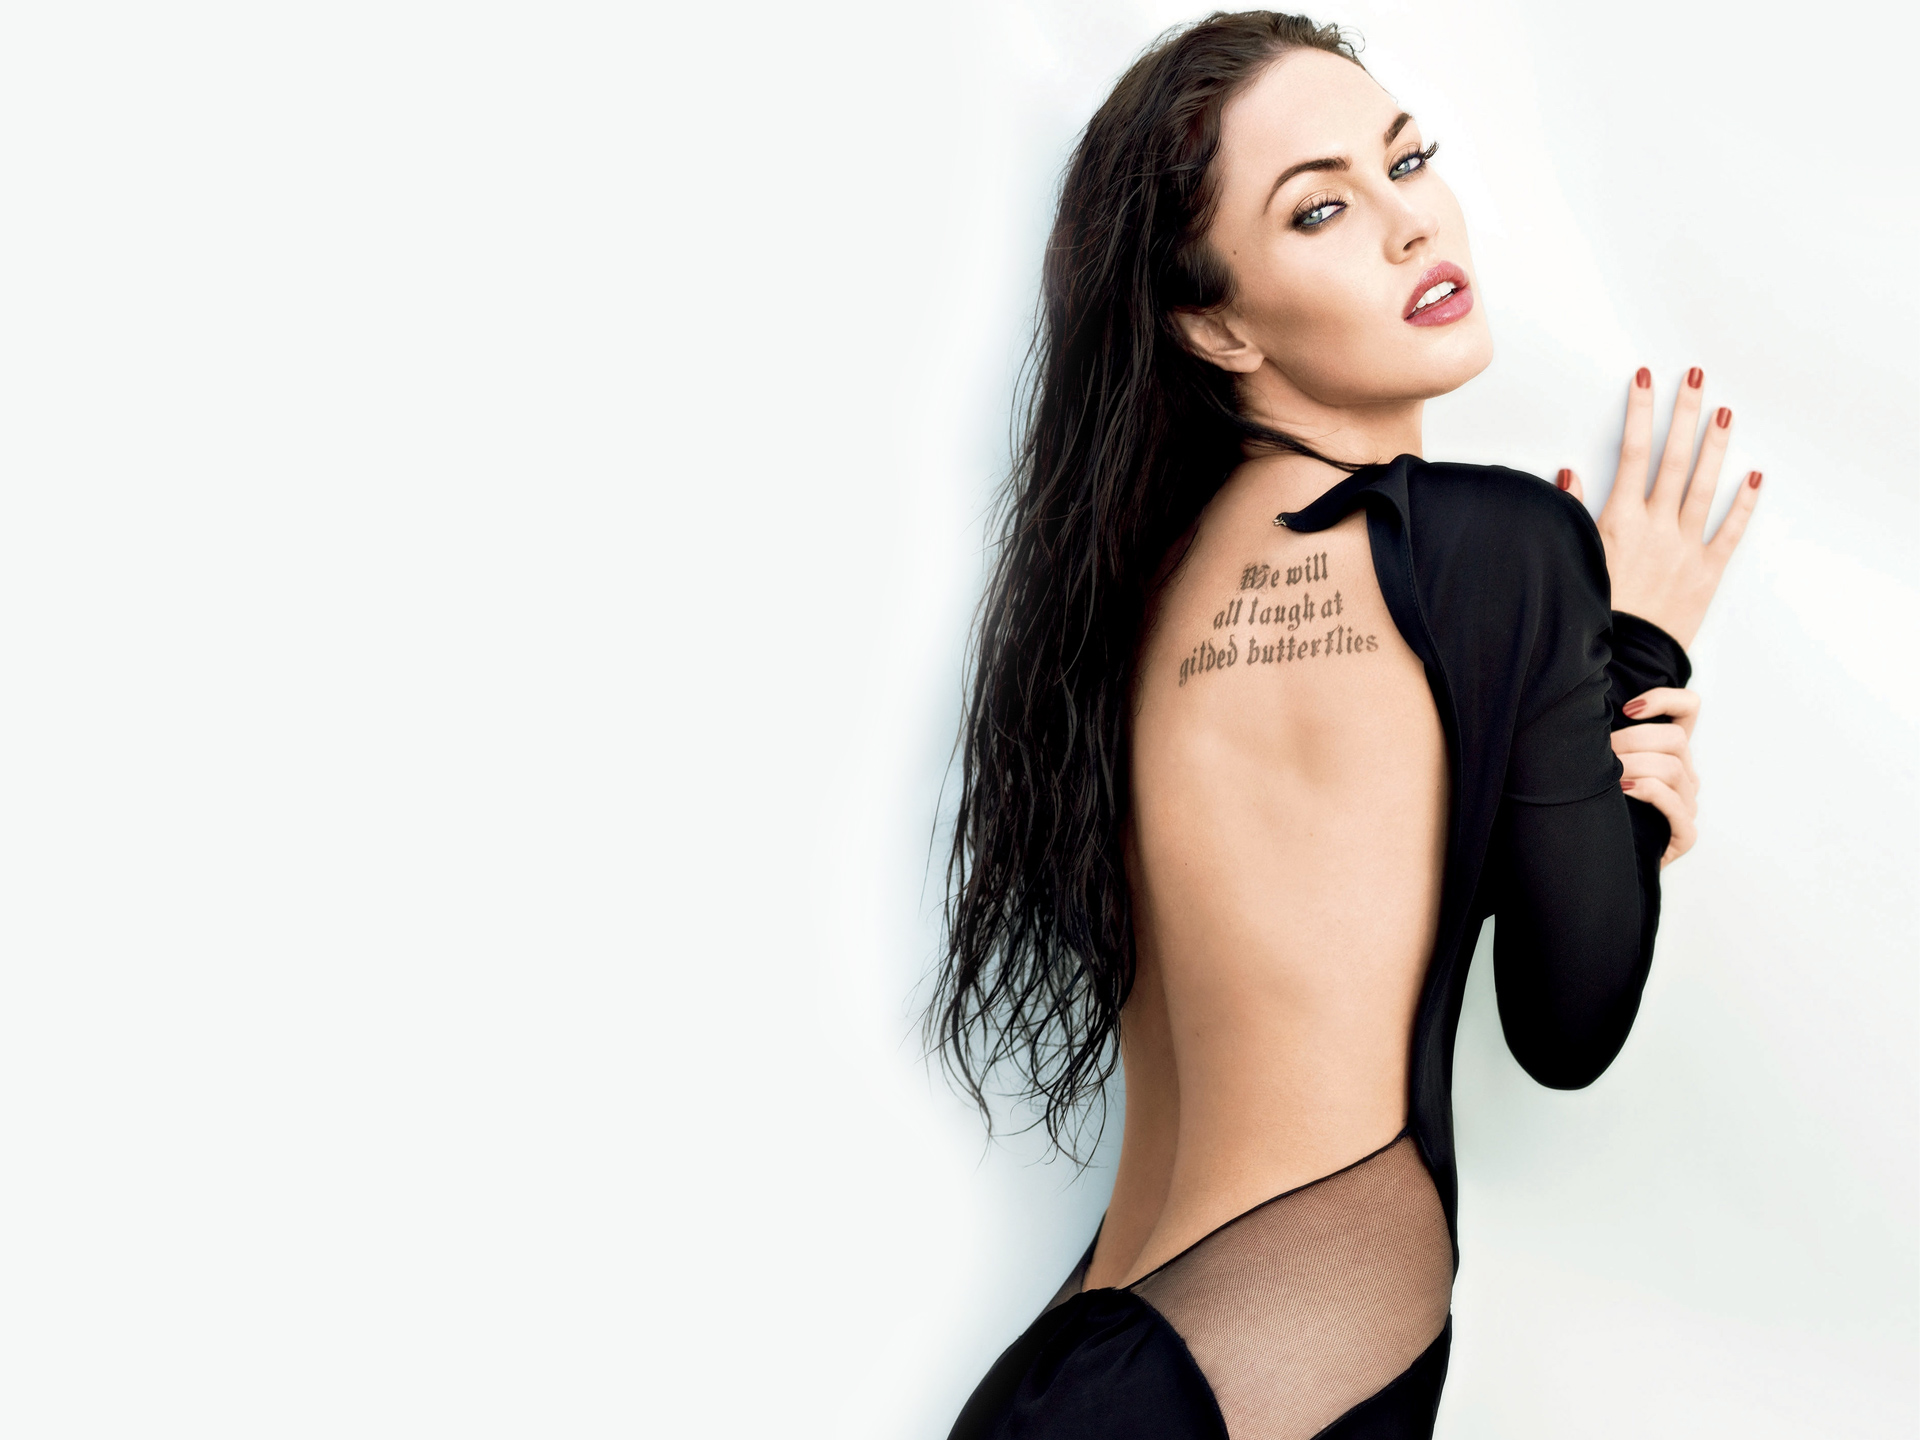 Megan Fox 2011 400.13 Kb